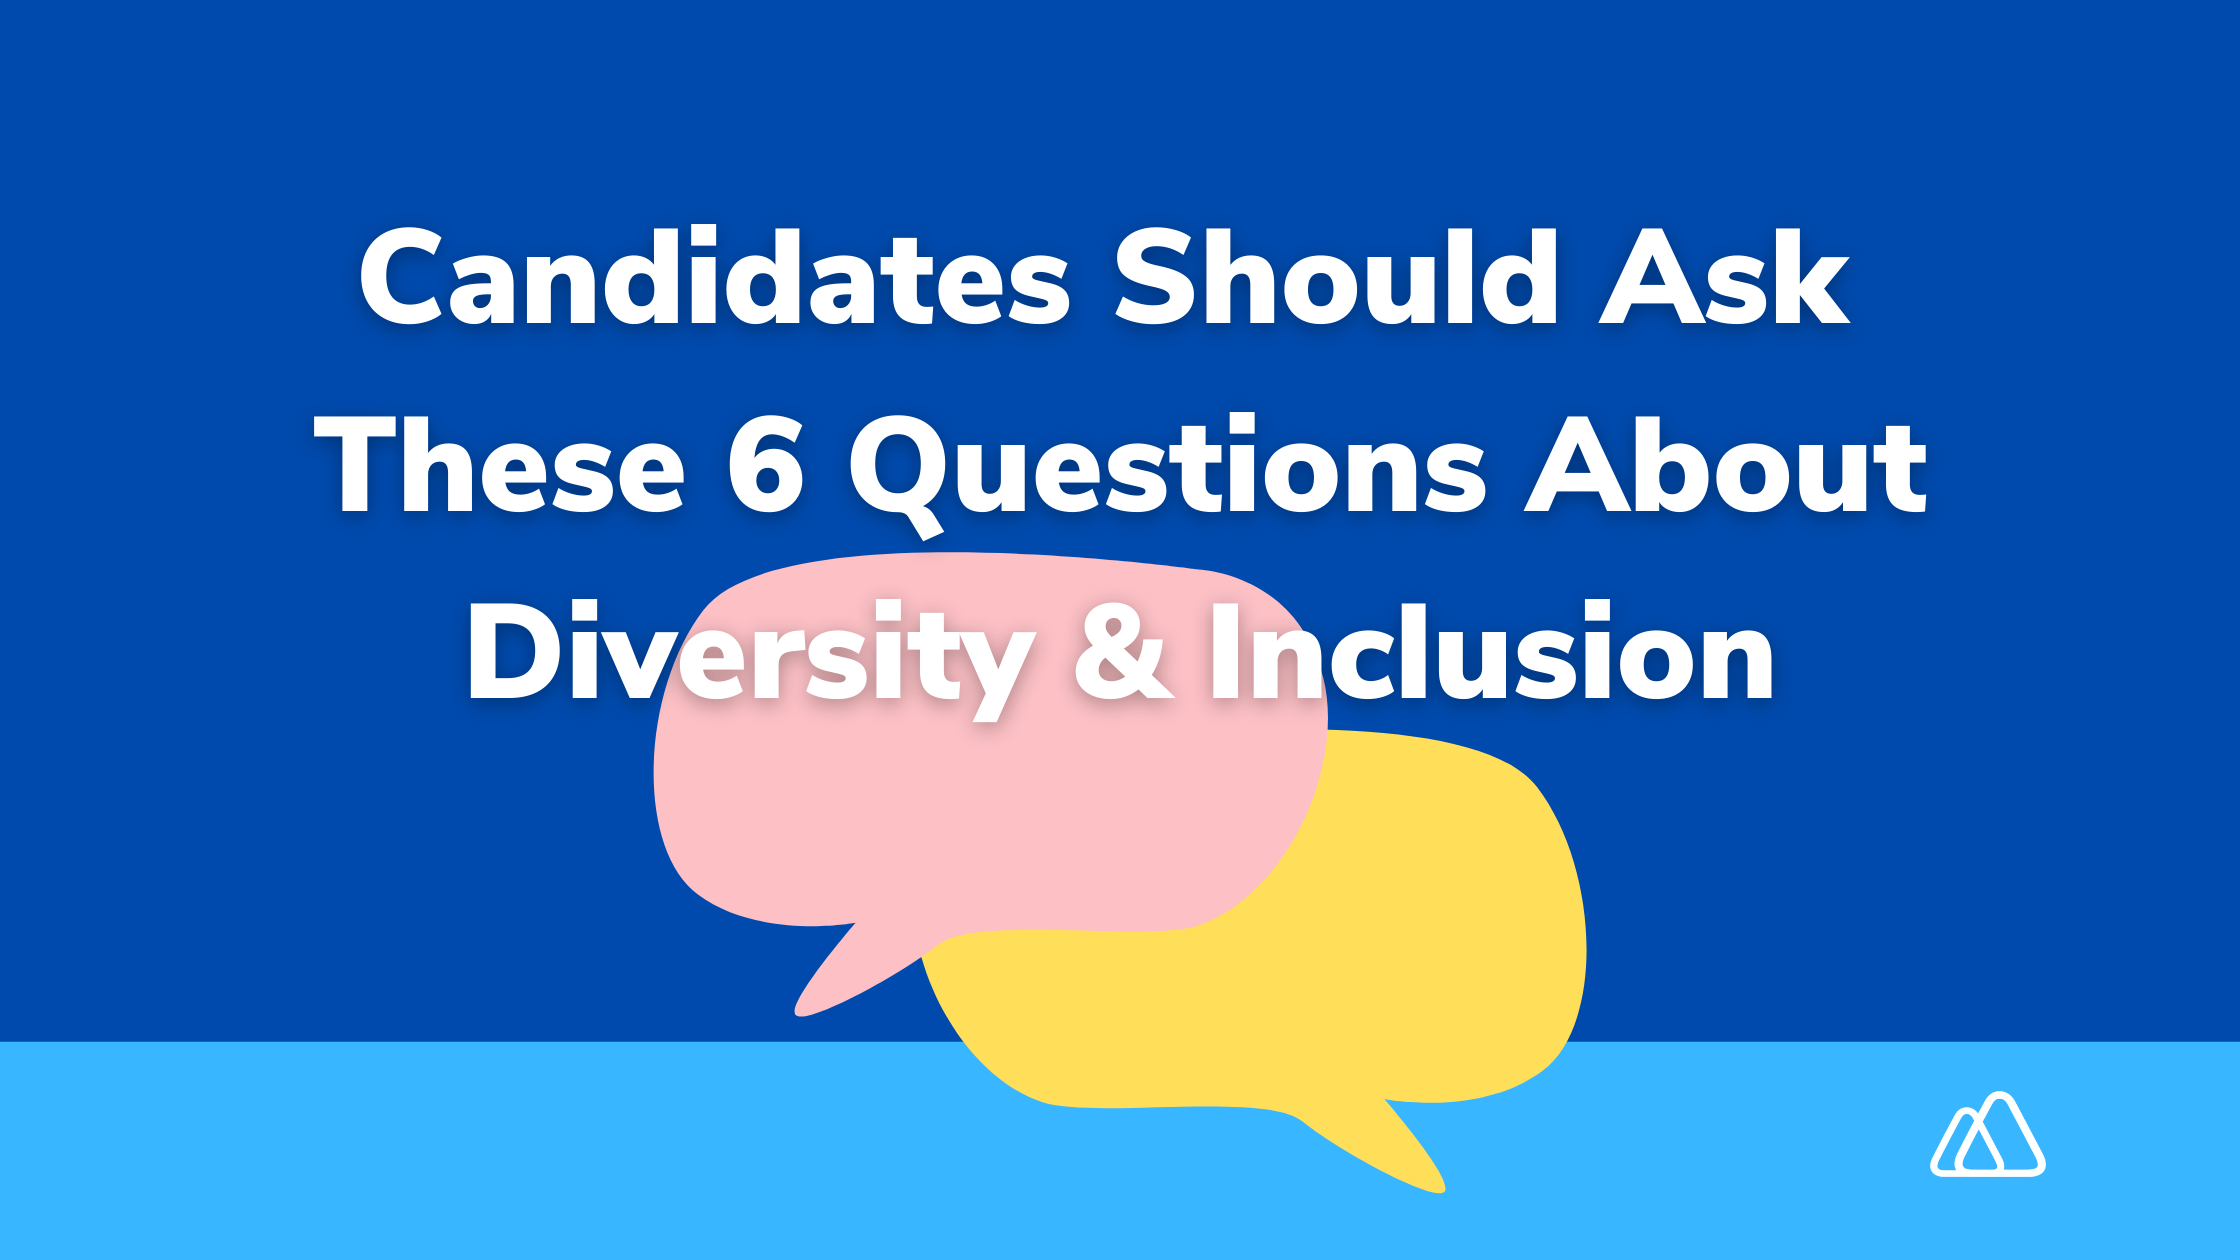 Candidates Should Ask These 6 Questions About Diversity and Inclusion